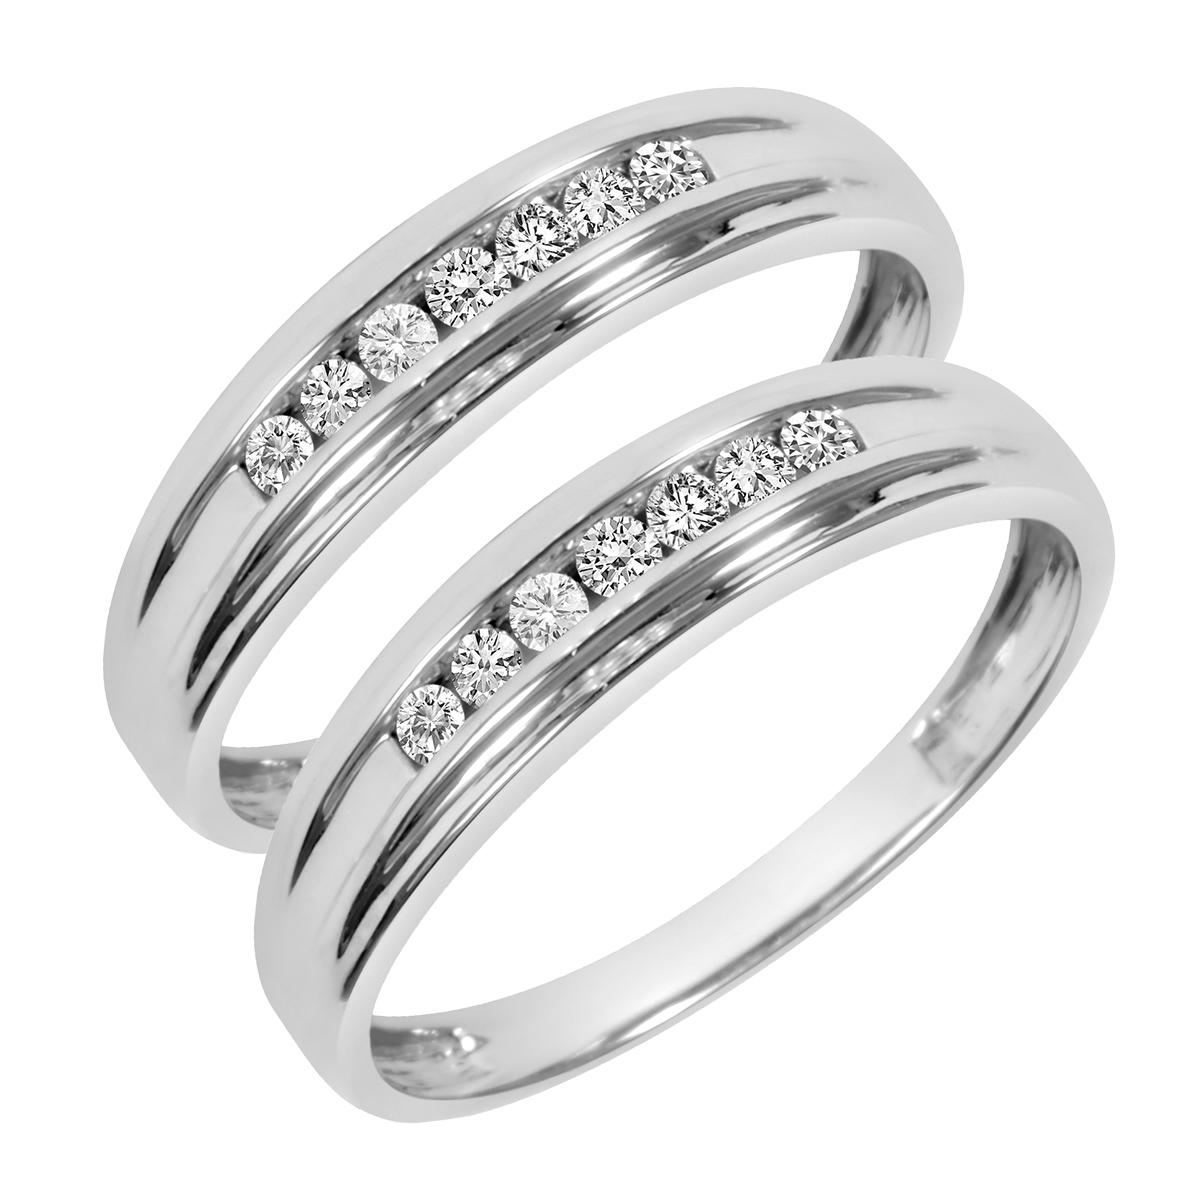 1/4 CT. T.W. Round Cut Ladies Same Sex Wedding Band Set 10K White Gold- Size 8